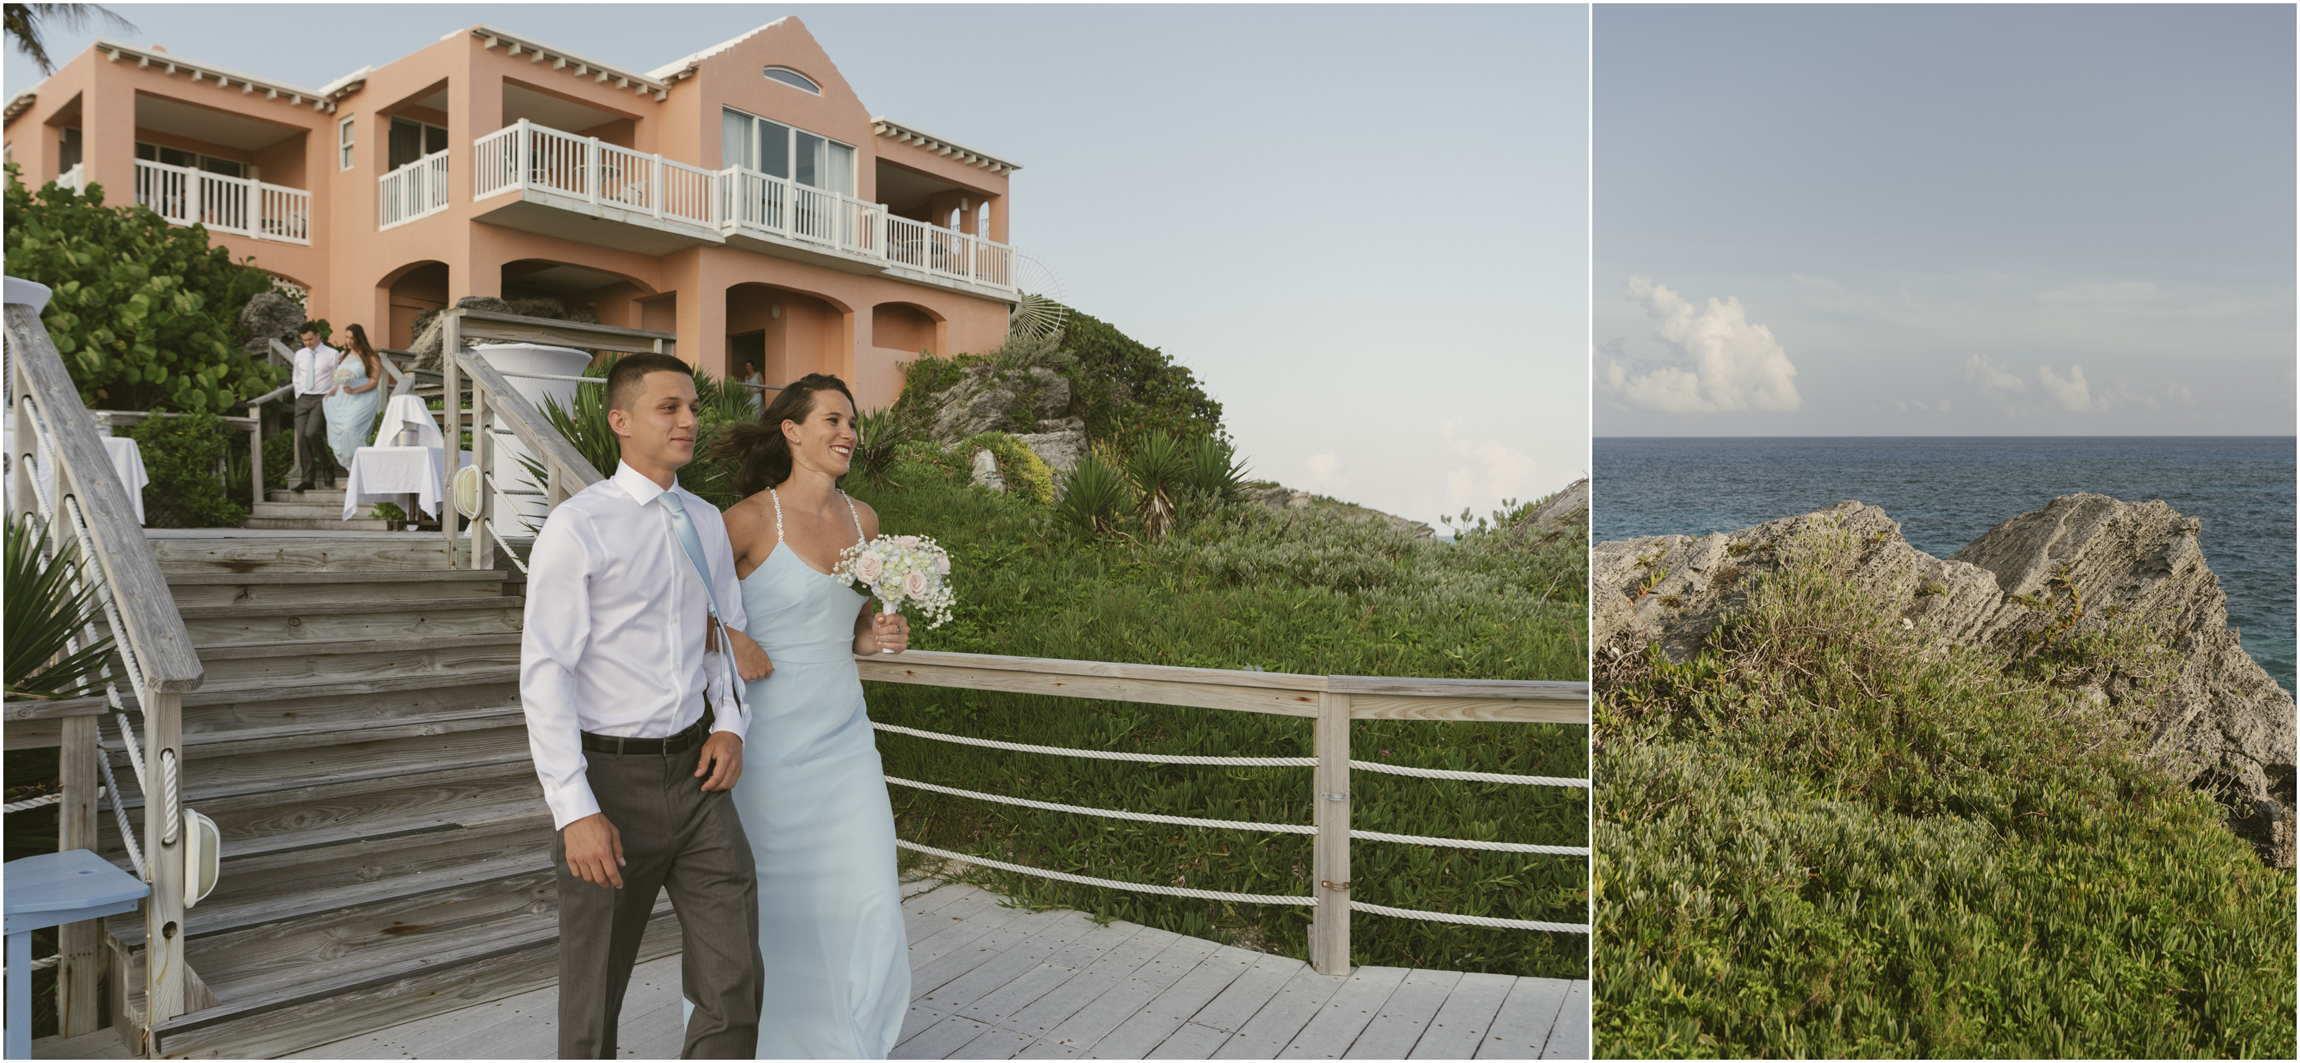 ©FianderFoto_Caribbean_Wedding_Photographer_The Reefs_Bermuda_Lauren_Erik_047.jpg